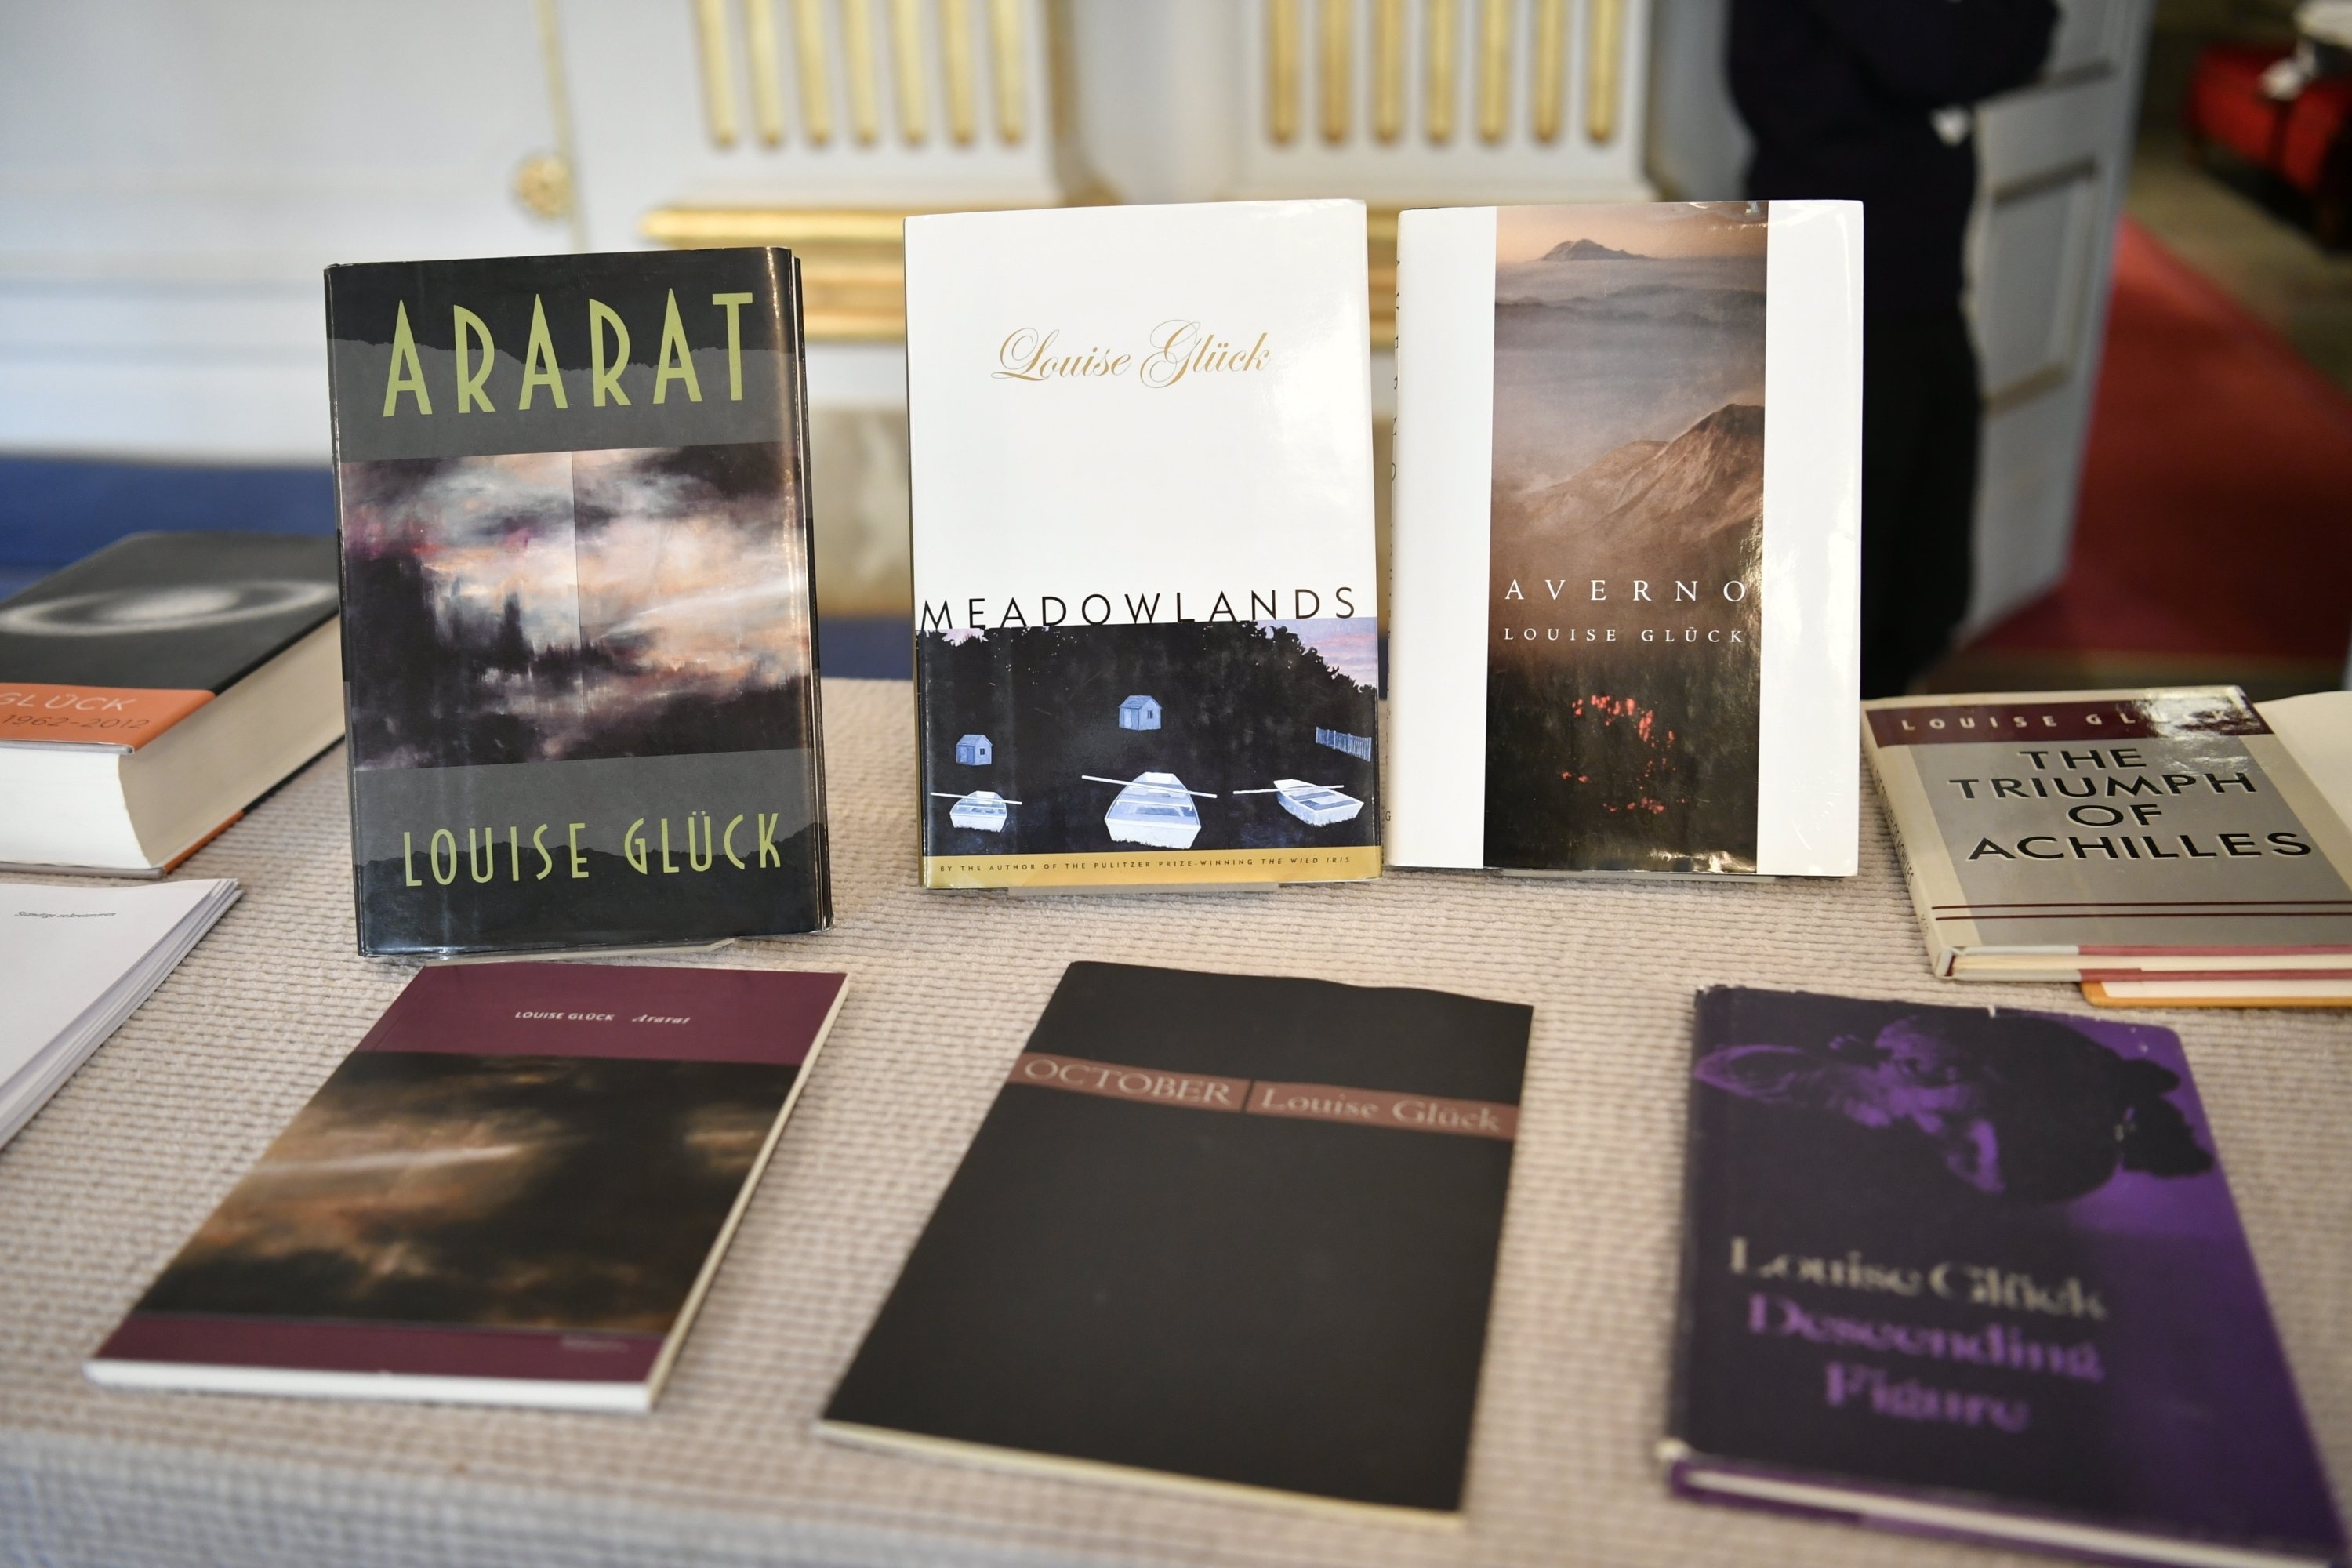 Books by Louise Gluck are displayed during the announcement of the 2020 Nobel Prize in Literature, in Stockholm, Oct. 8, 2020. (AP Photo)